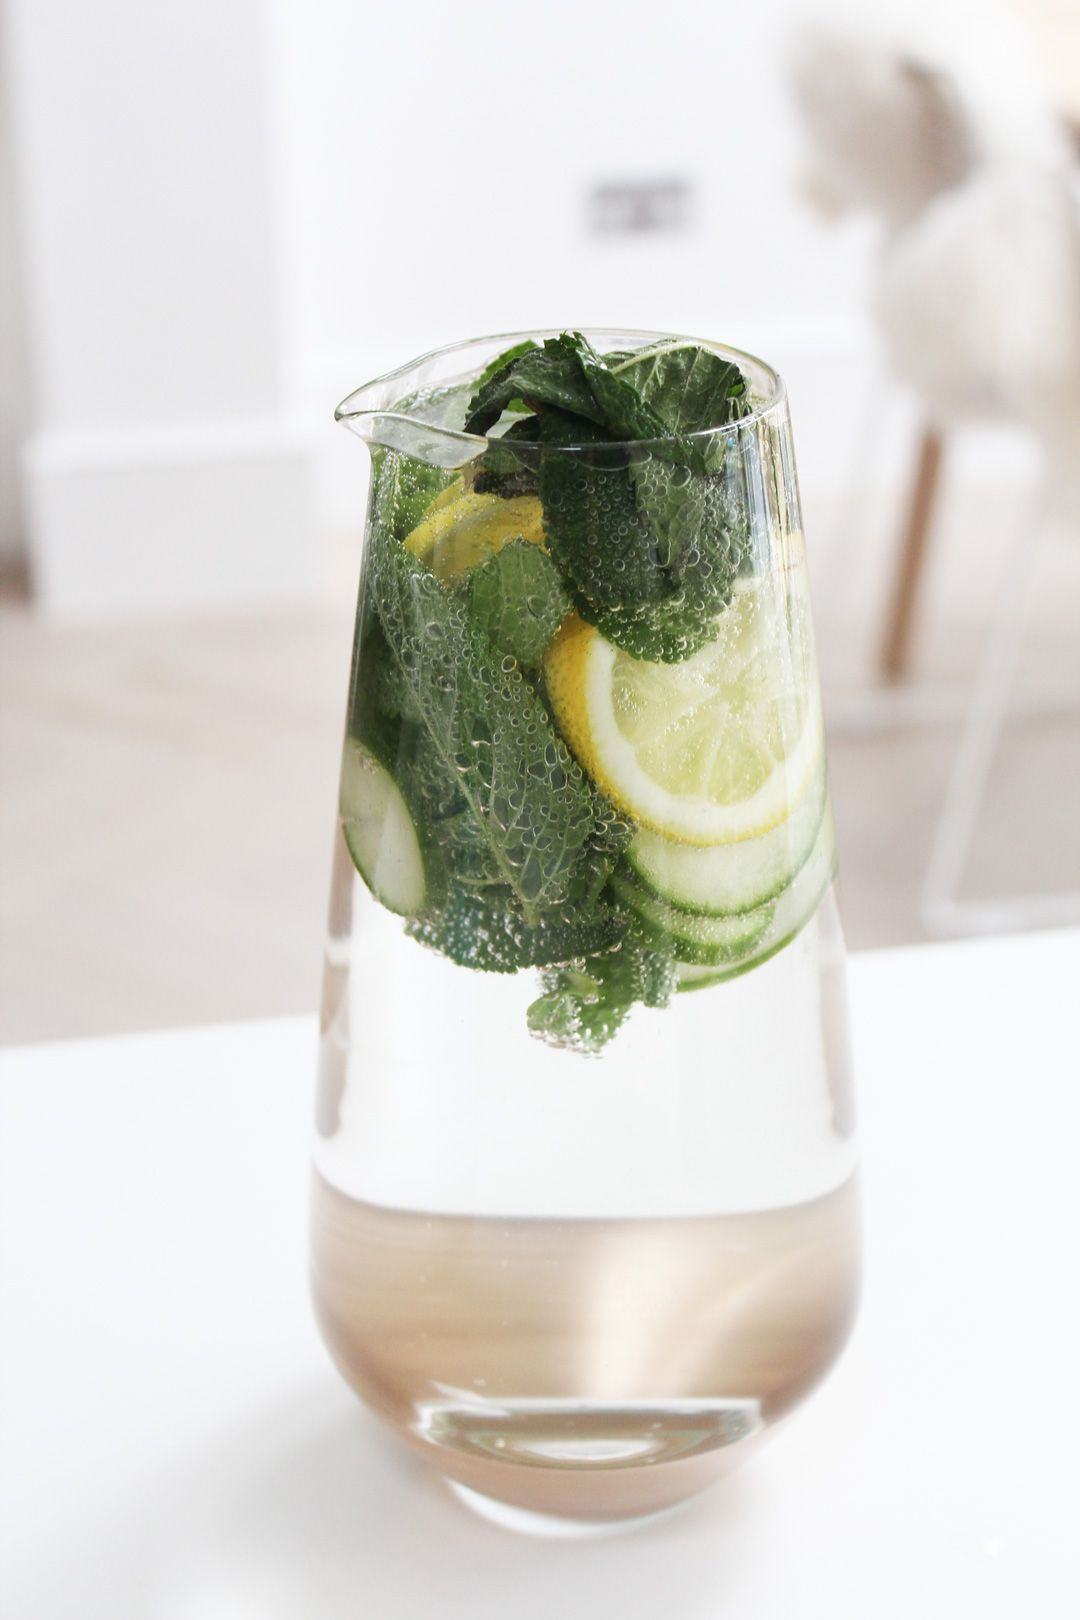 Lemon, mint & cucumber infused water